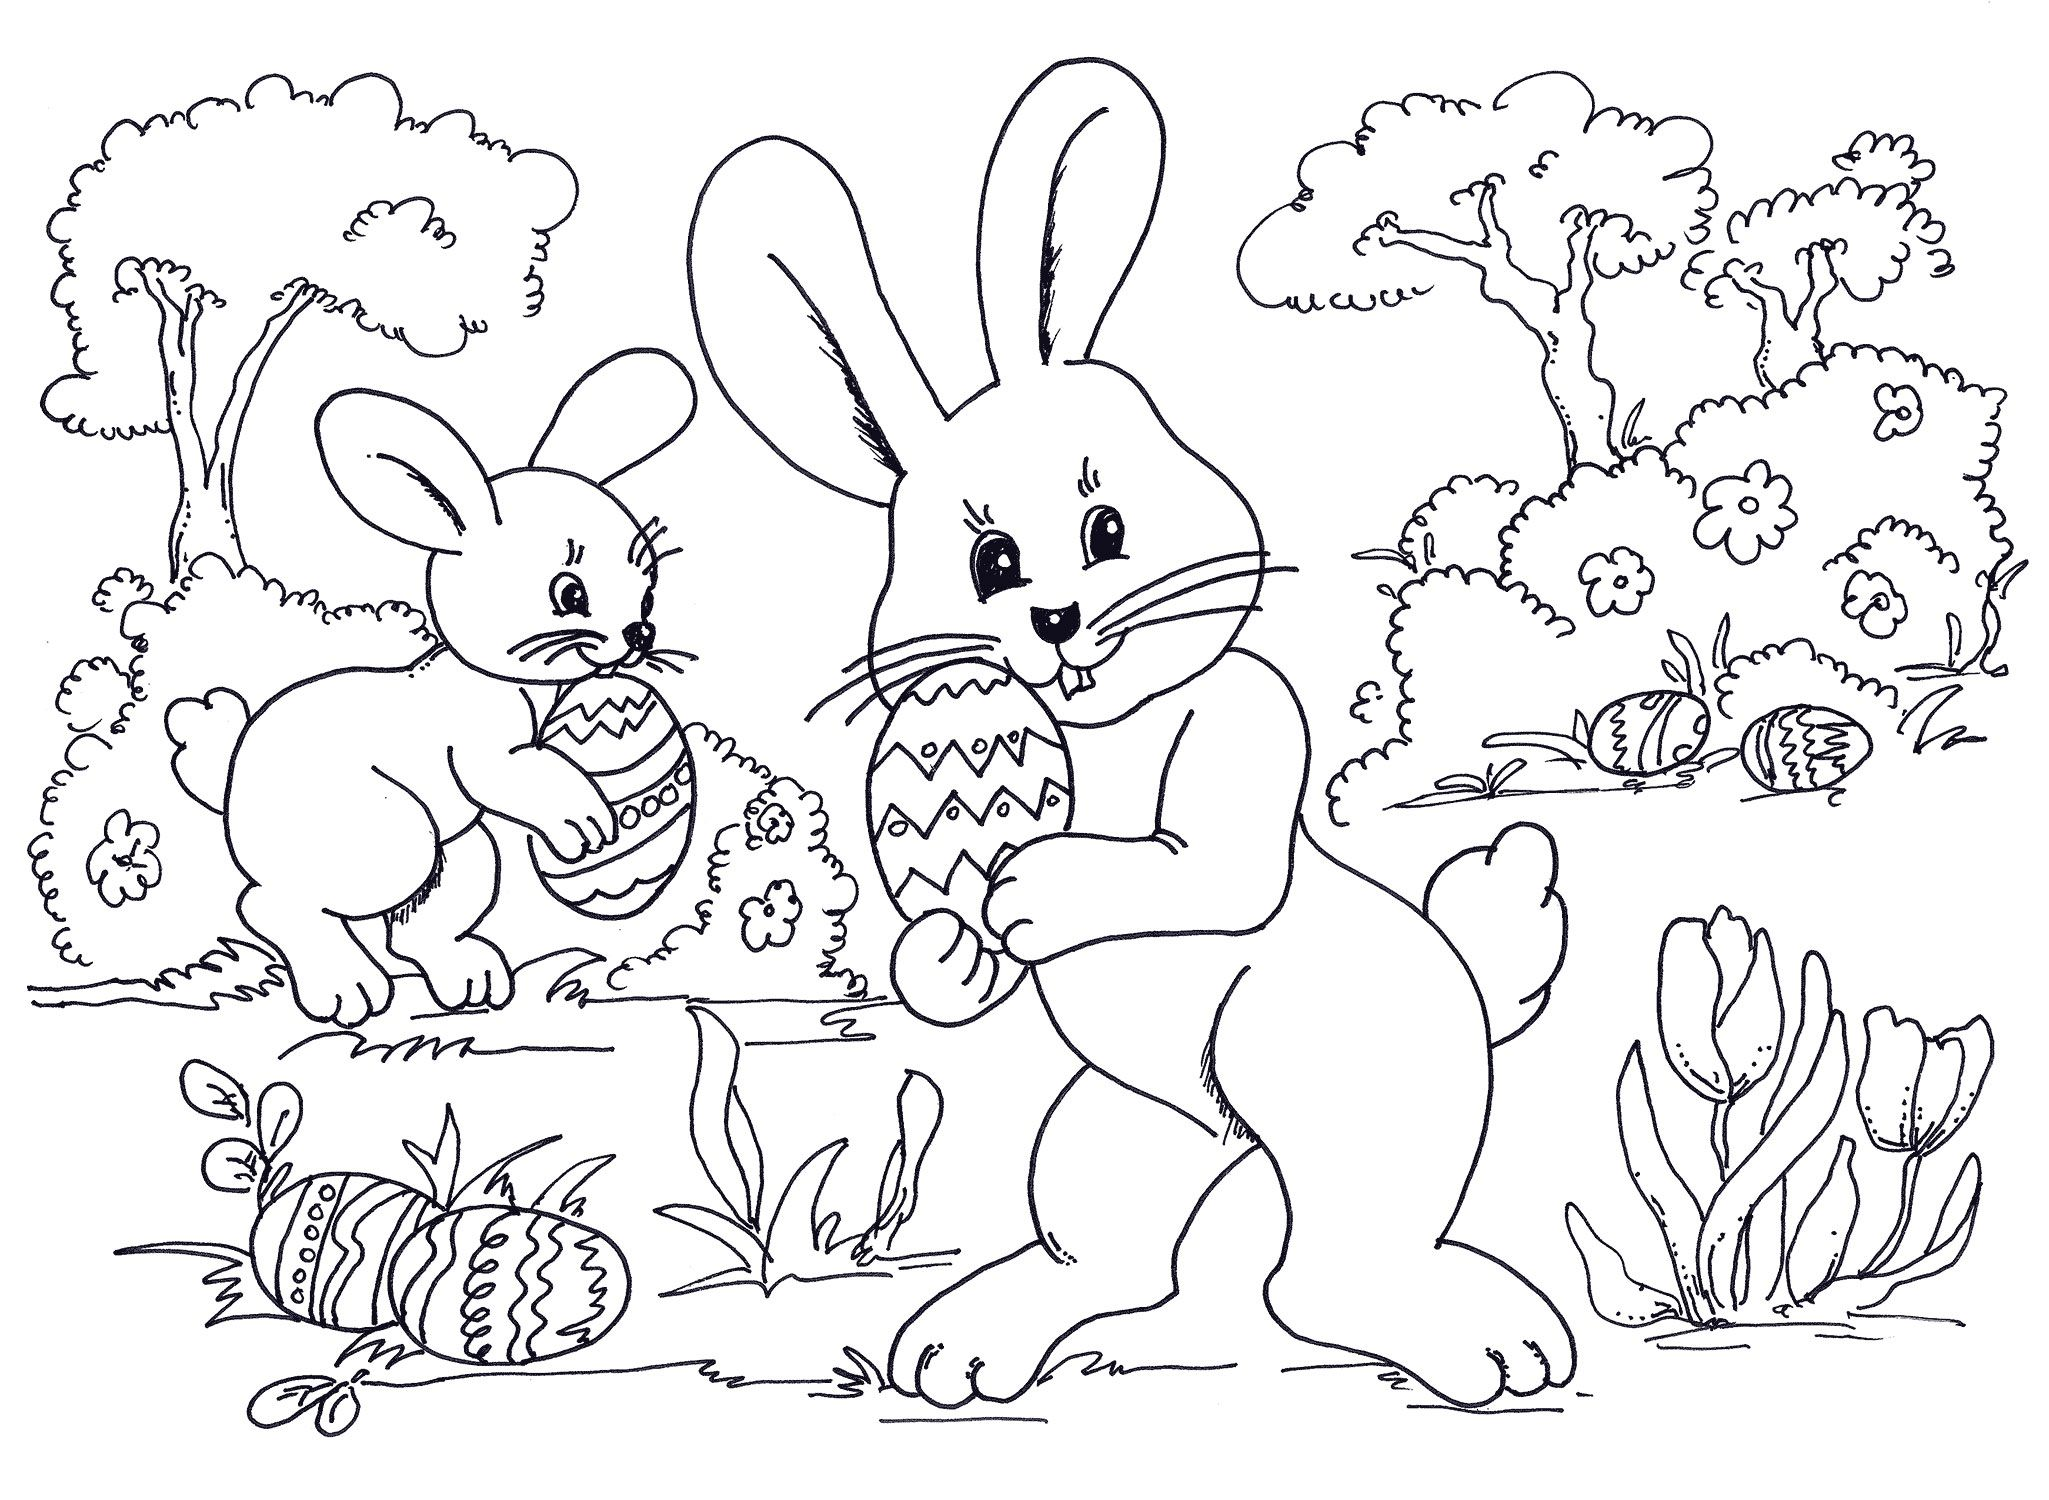 Coloringpagesactivity Com This Website Is For Sale Coloringpagesactivity Resources And I Bunny Coloring Pages Easter Coloring Pages Easter Bunny Colouring